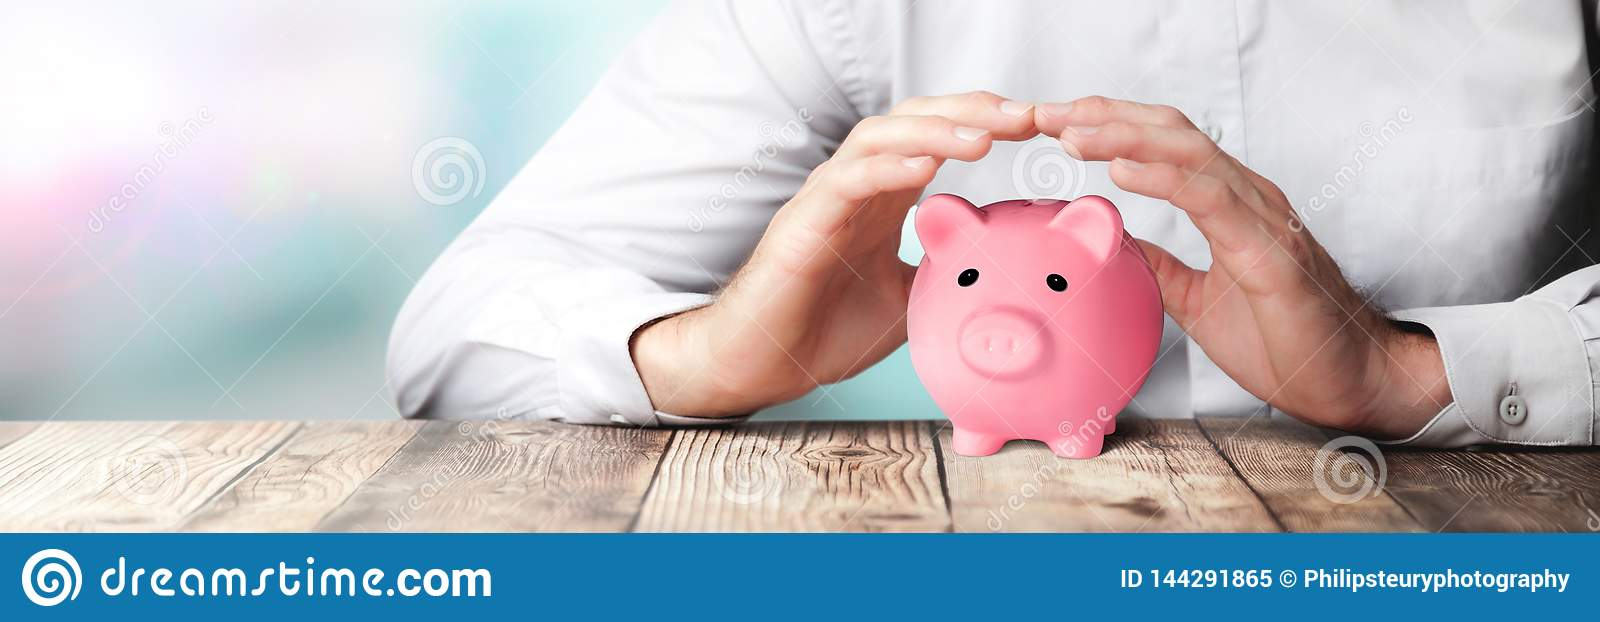 Protecting Hands Over Pink Piggy Bank - Financial Security Concept